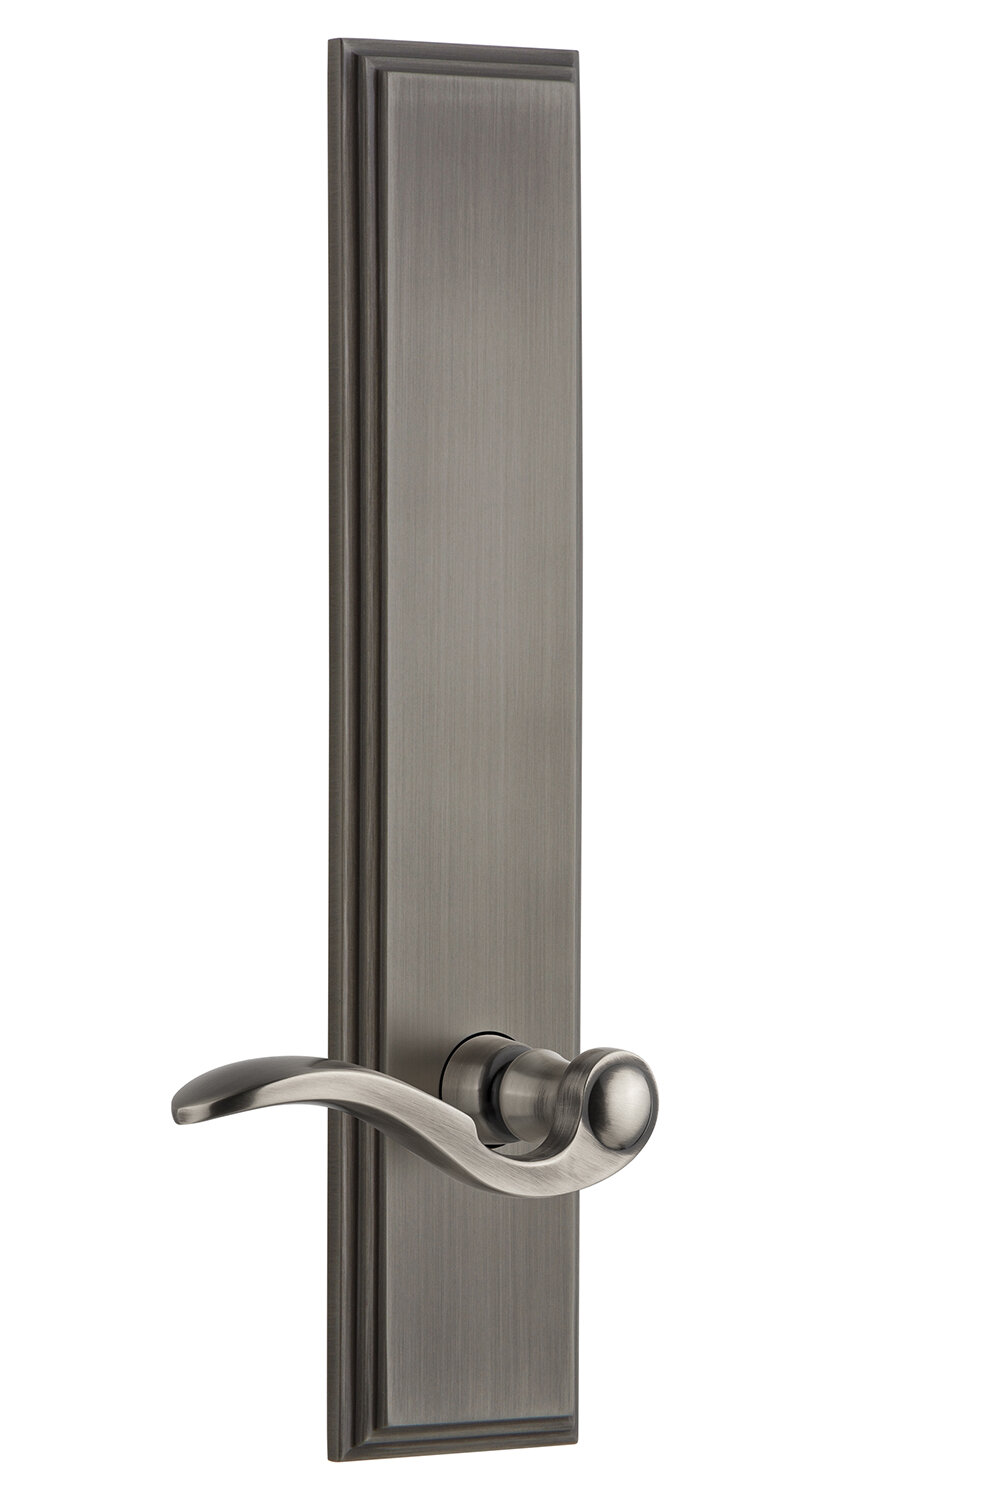 Grandeur Bellagio Privacy Door Lever With Carre Plate Wayfair